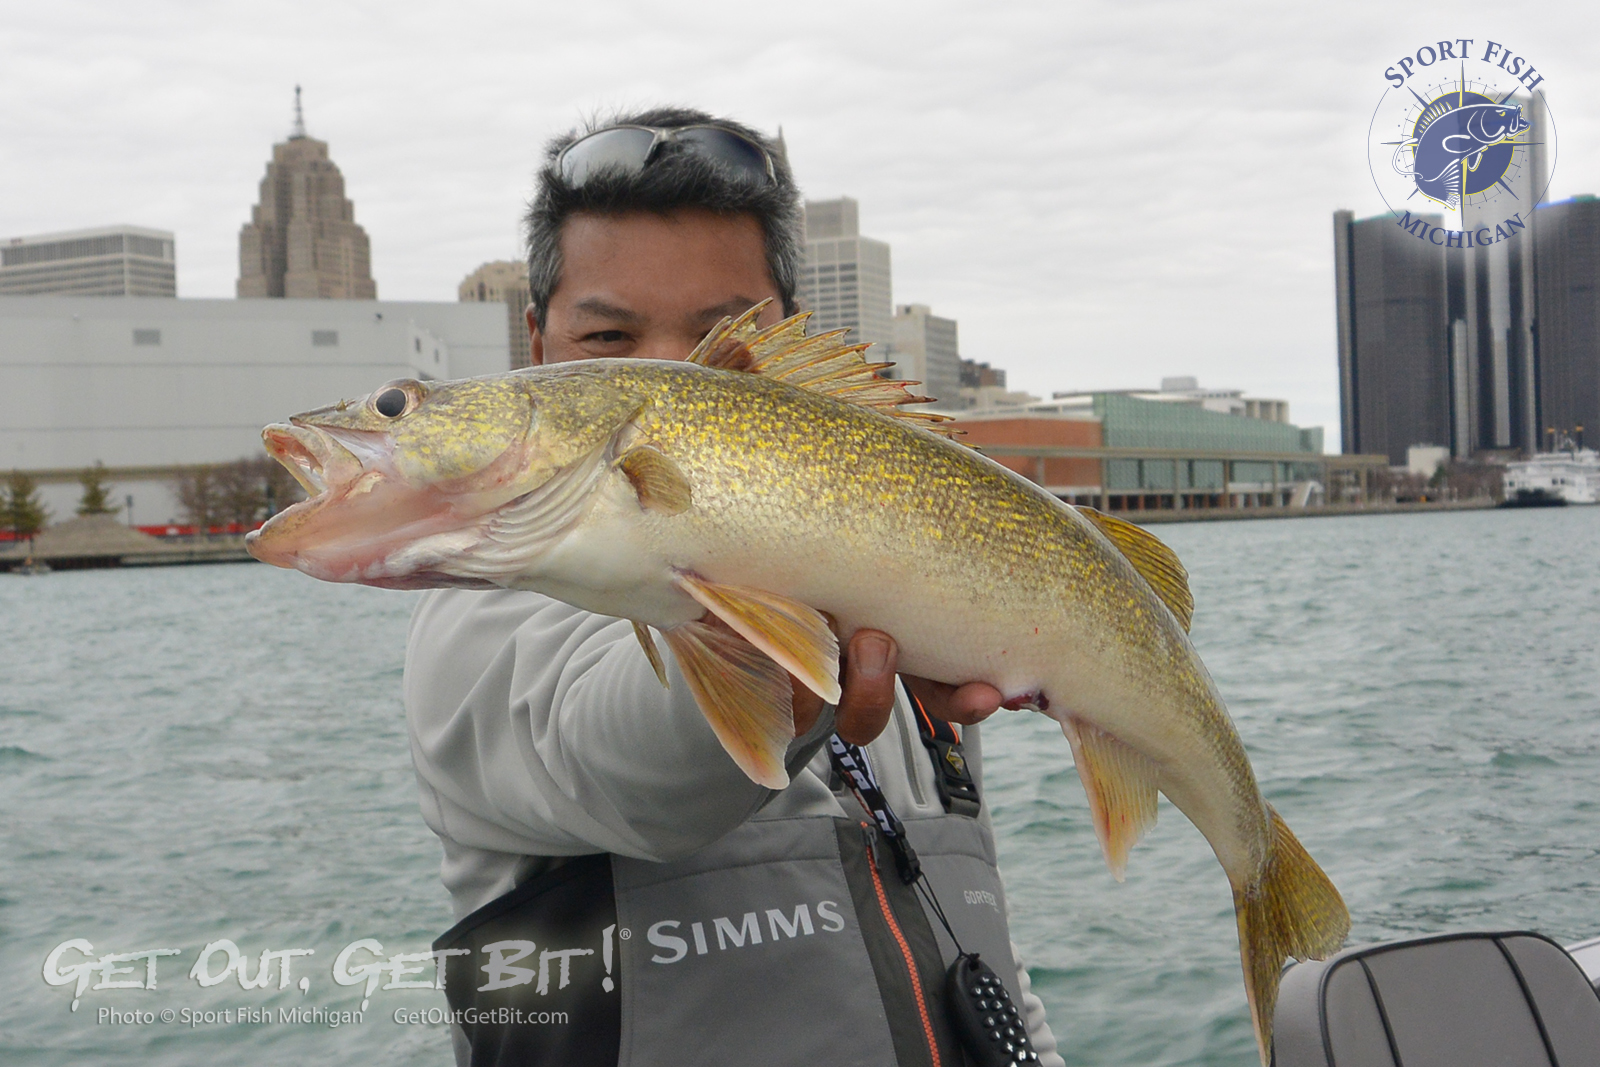 Great service archives fishing report for Mi dnr fishing report